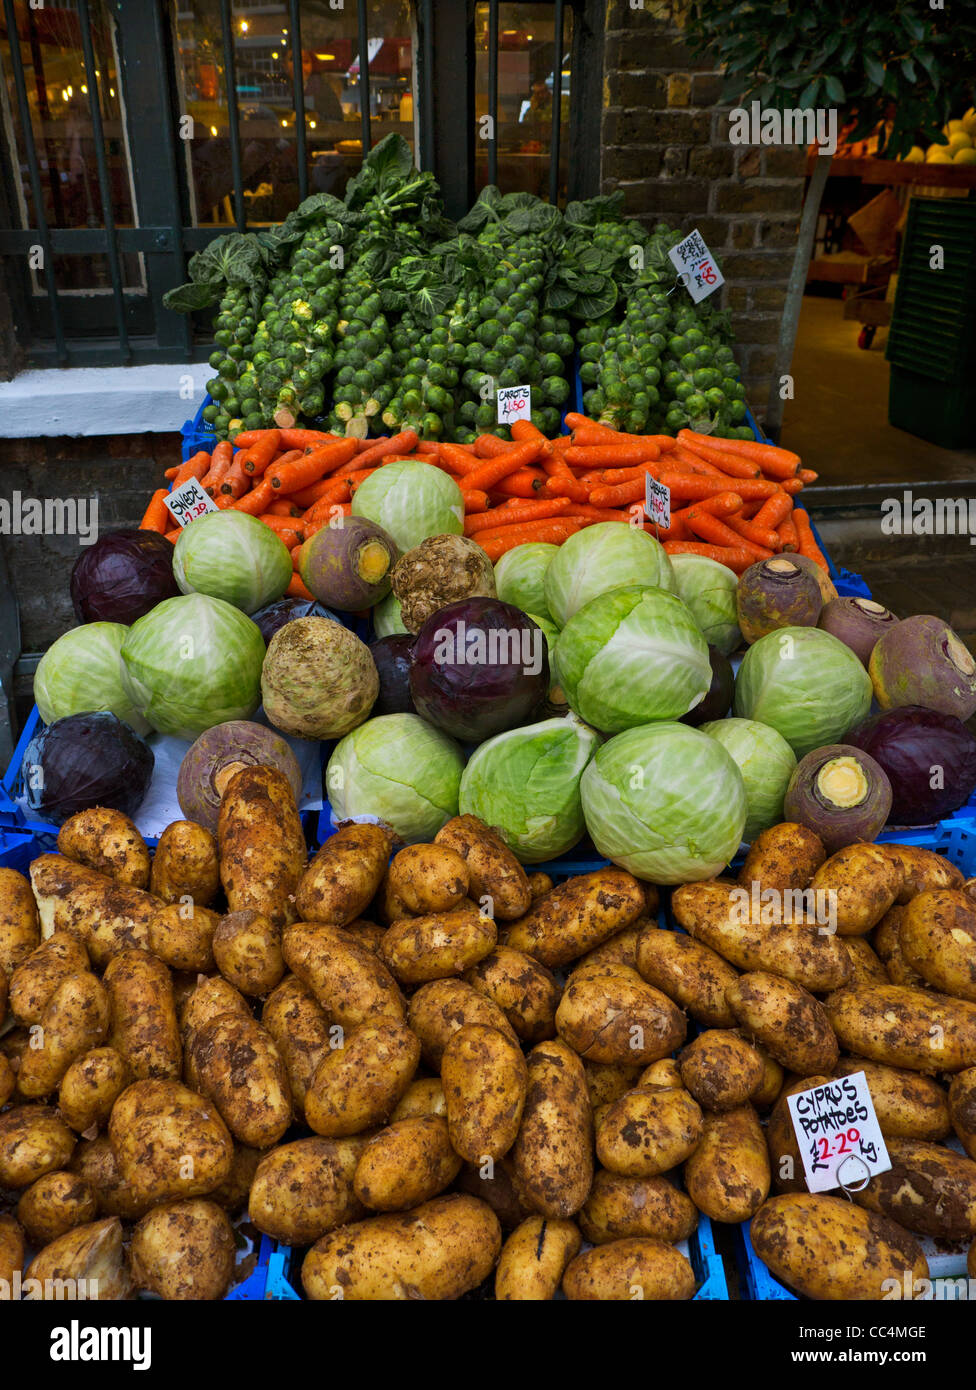 Selection of fresh vegetables on sale at Borough Market Southwark London UK - Stock Image